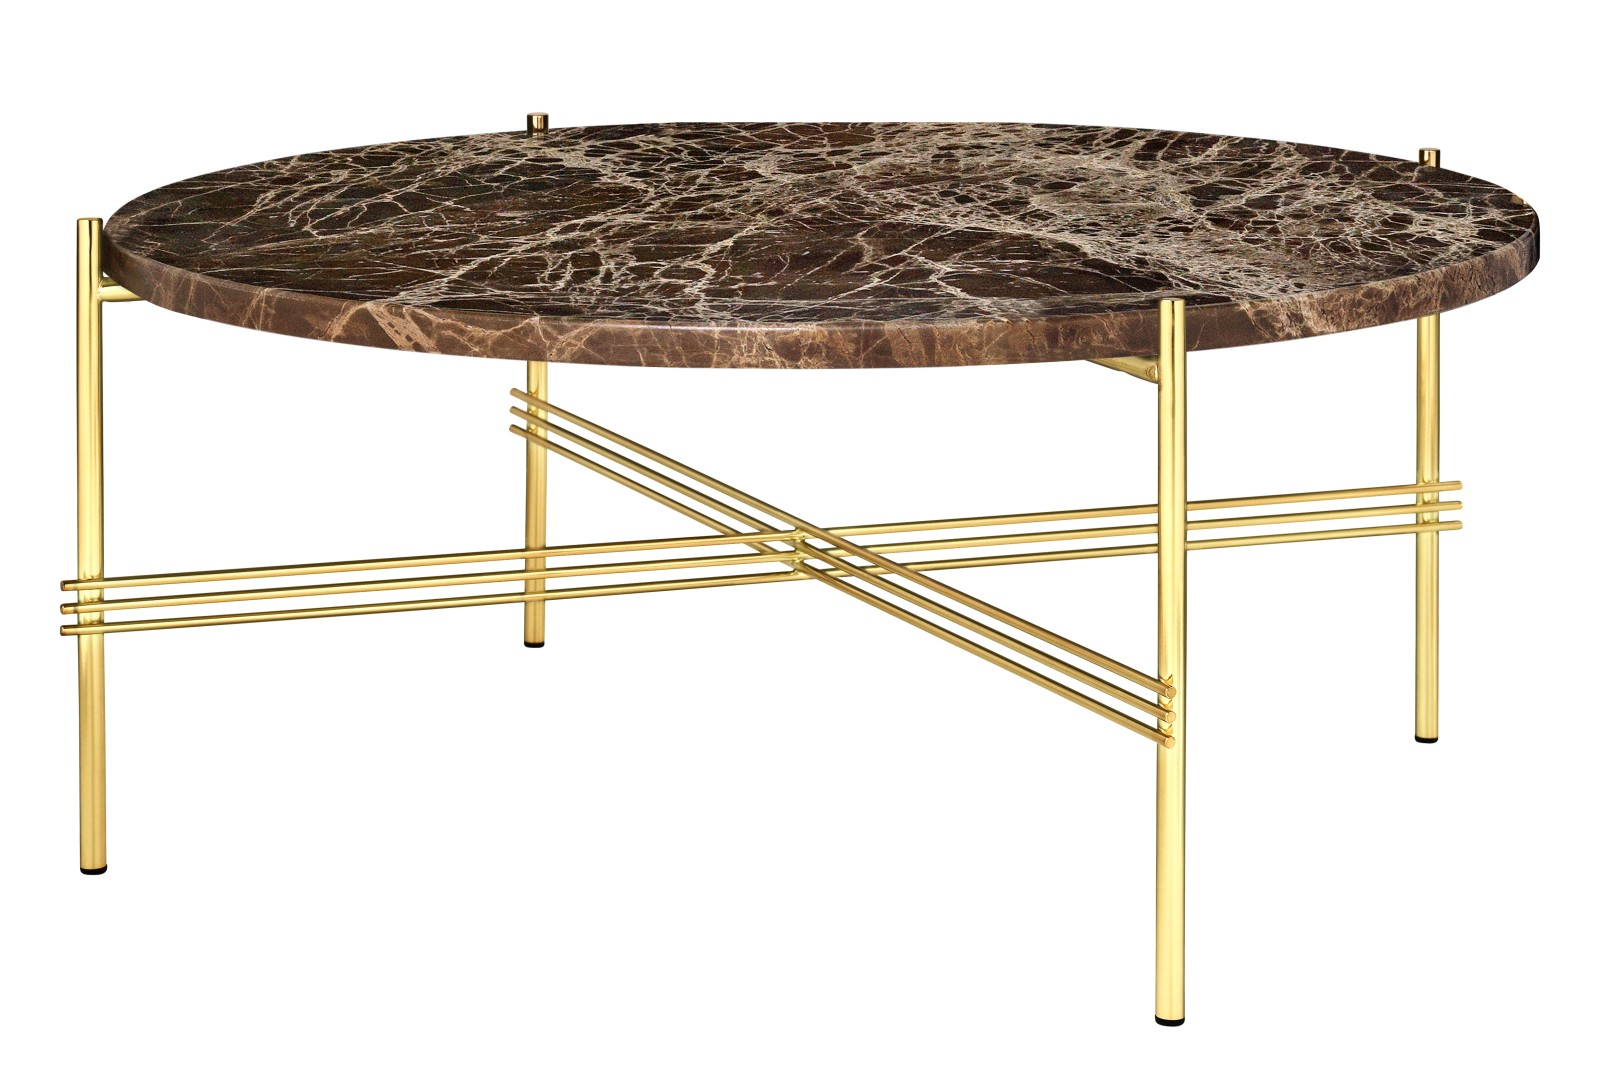 TS Round Coffee Table with Marble Top in Black Frame Gubi Marble Marrone Emperador, Gubi Metal Brass